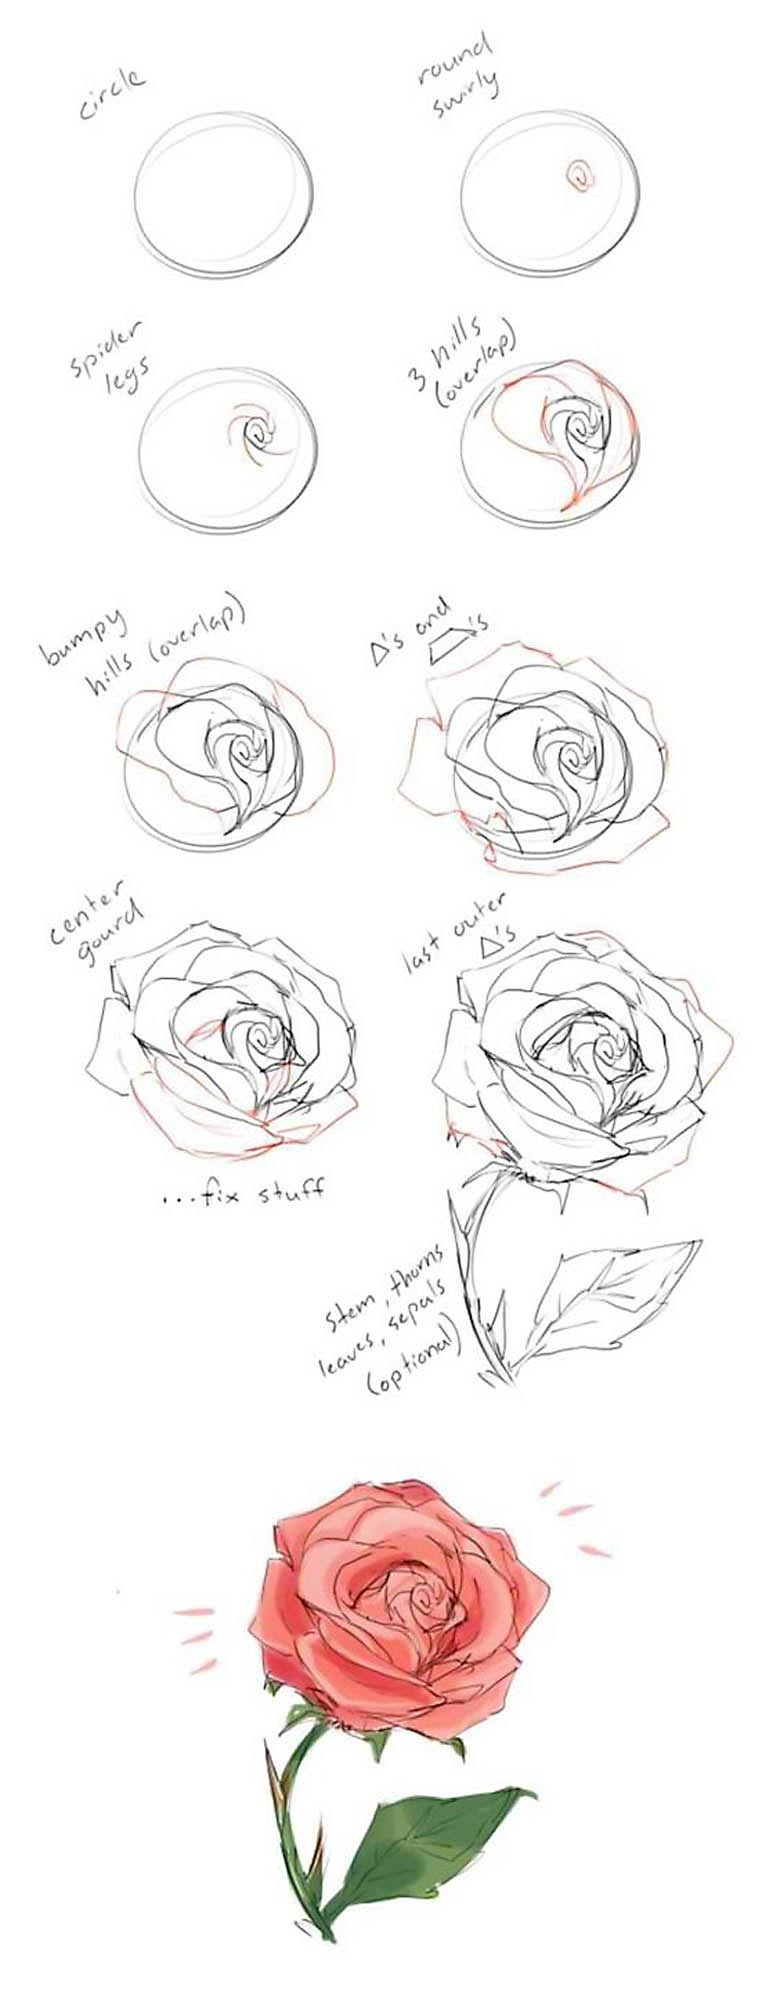 how to draw a rose guide - Learn how to draw flowers like roses of lilies and turn them into really beautiful wall art. practice flower drawings easy on chalkboard with step-by-step tutorials and easy to follow the instructions and get amazing results! Drawing is relaxing and fun for all ages! #drawings #howtodraw #flowers  #wallart #walldecor